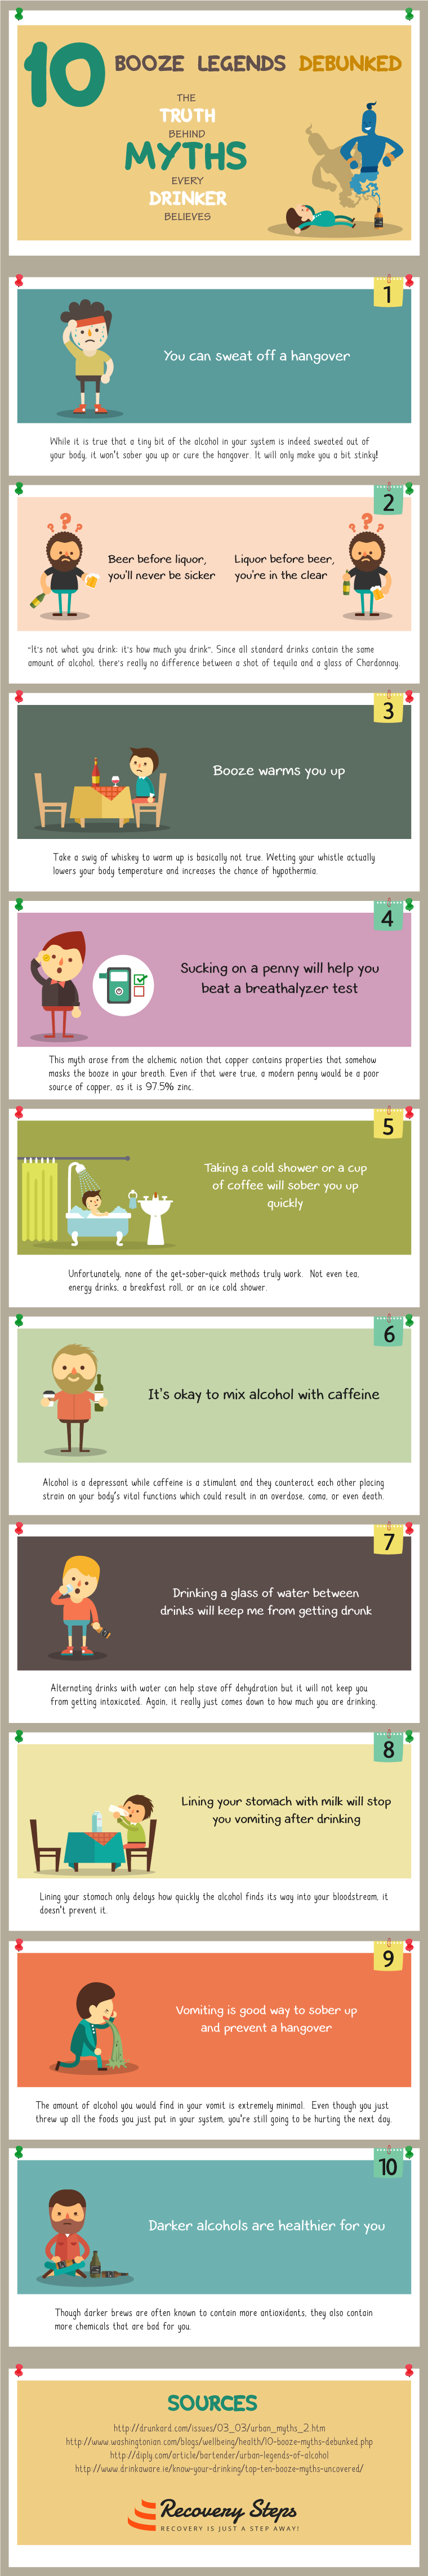 10 Booze Legends Debunked #Infographic